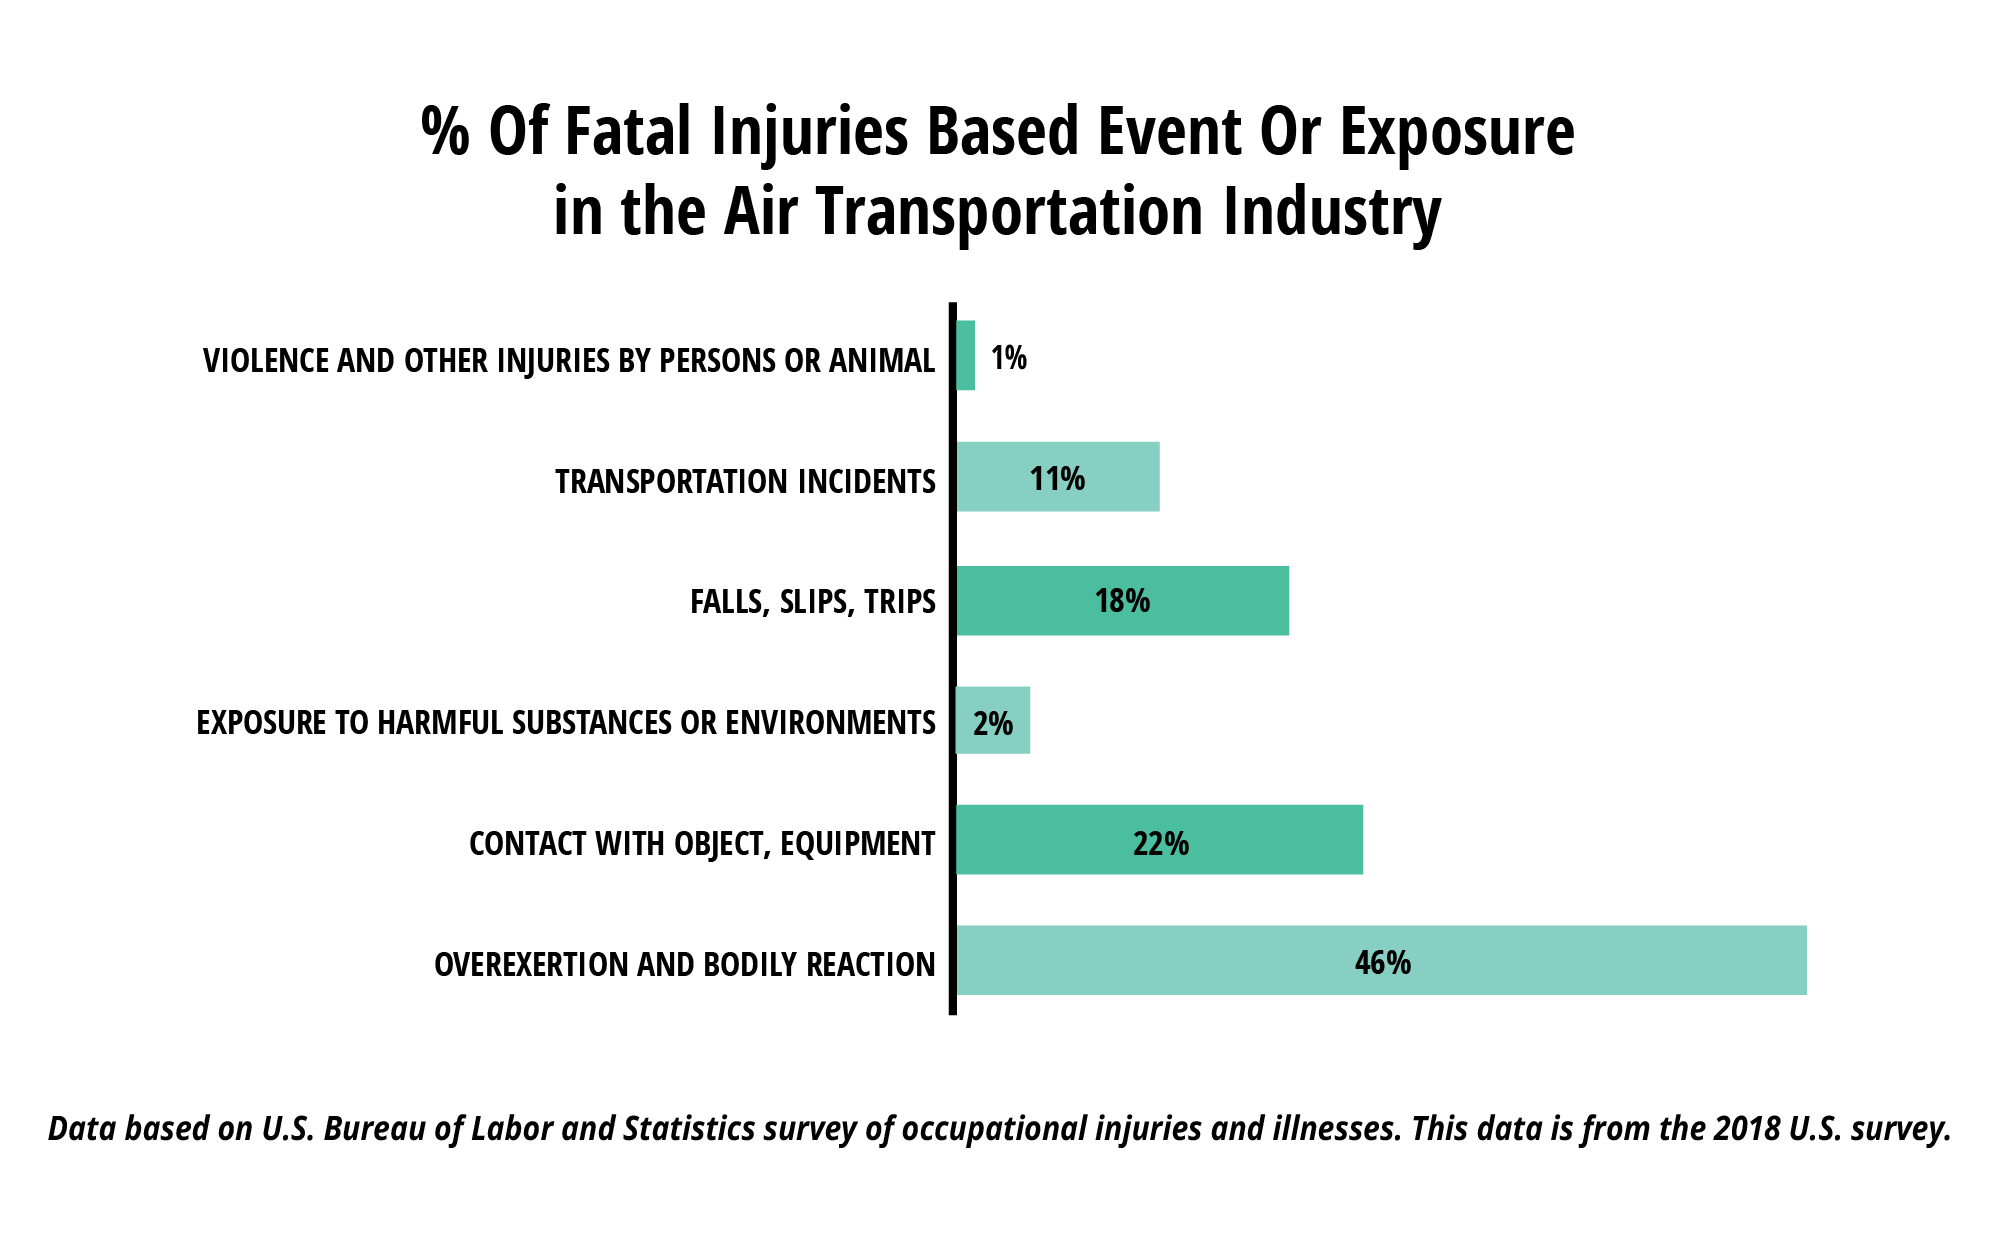 %25%20Of%20Fatal%20Injuries%20Based%20Event%20Or%20Exposure%20-in%20the%20Air%20Transportation%20Industry